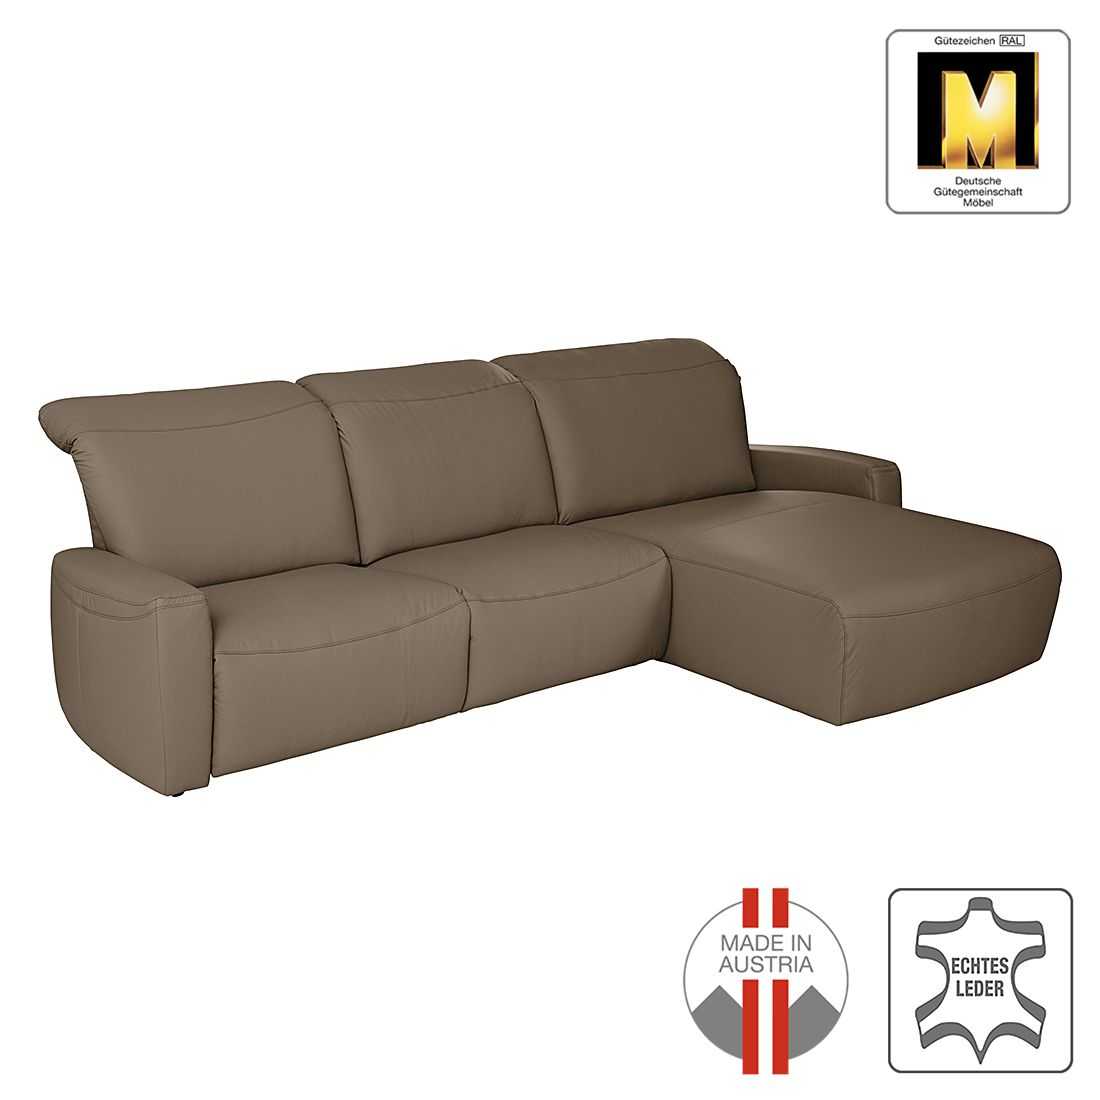 ecksofa mit relaxfunktion g nstig kaufen. Black Bedroom Furniture Sets. Home Design Ideas